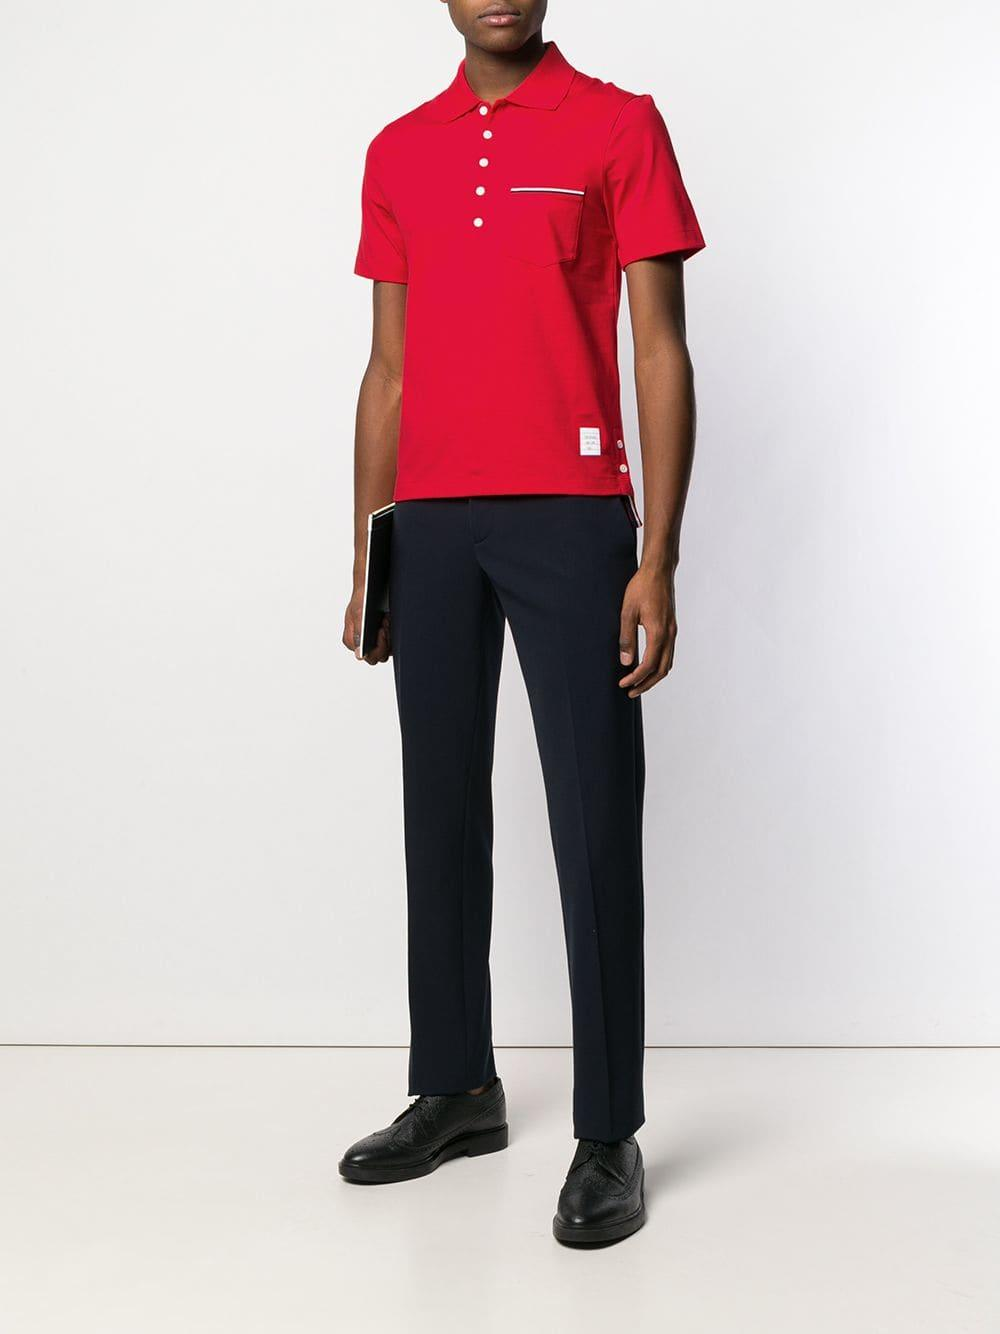 27d2a8112d4 Thom Browne Chest Pocket Polo Shirt in Red for Men - Lyst